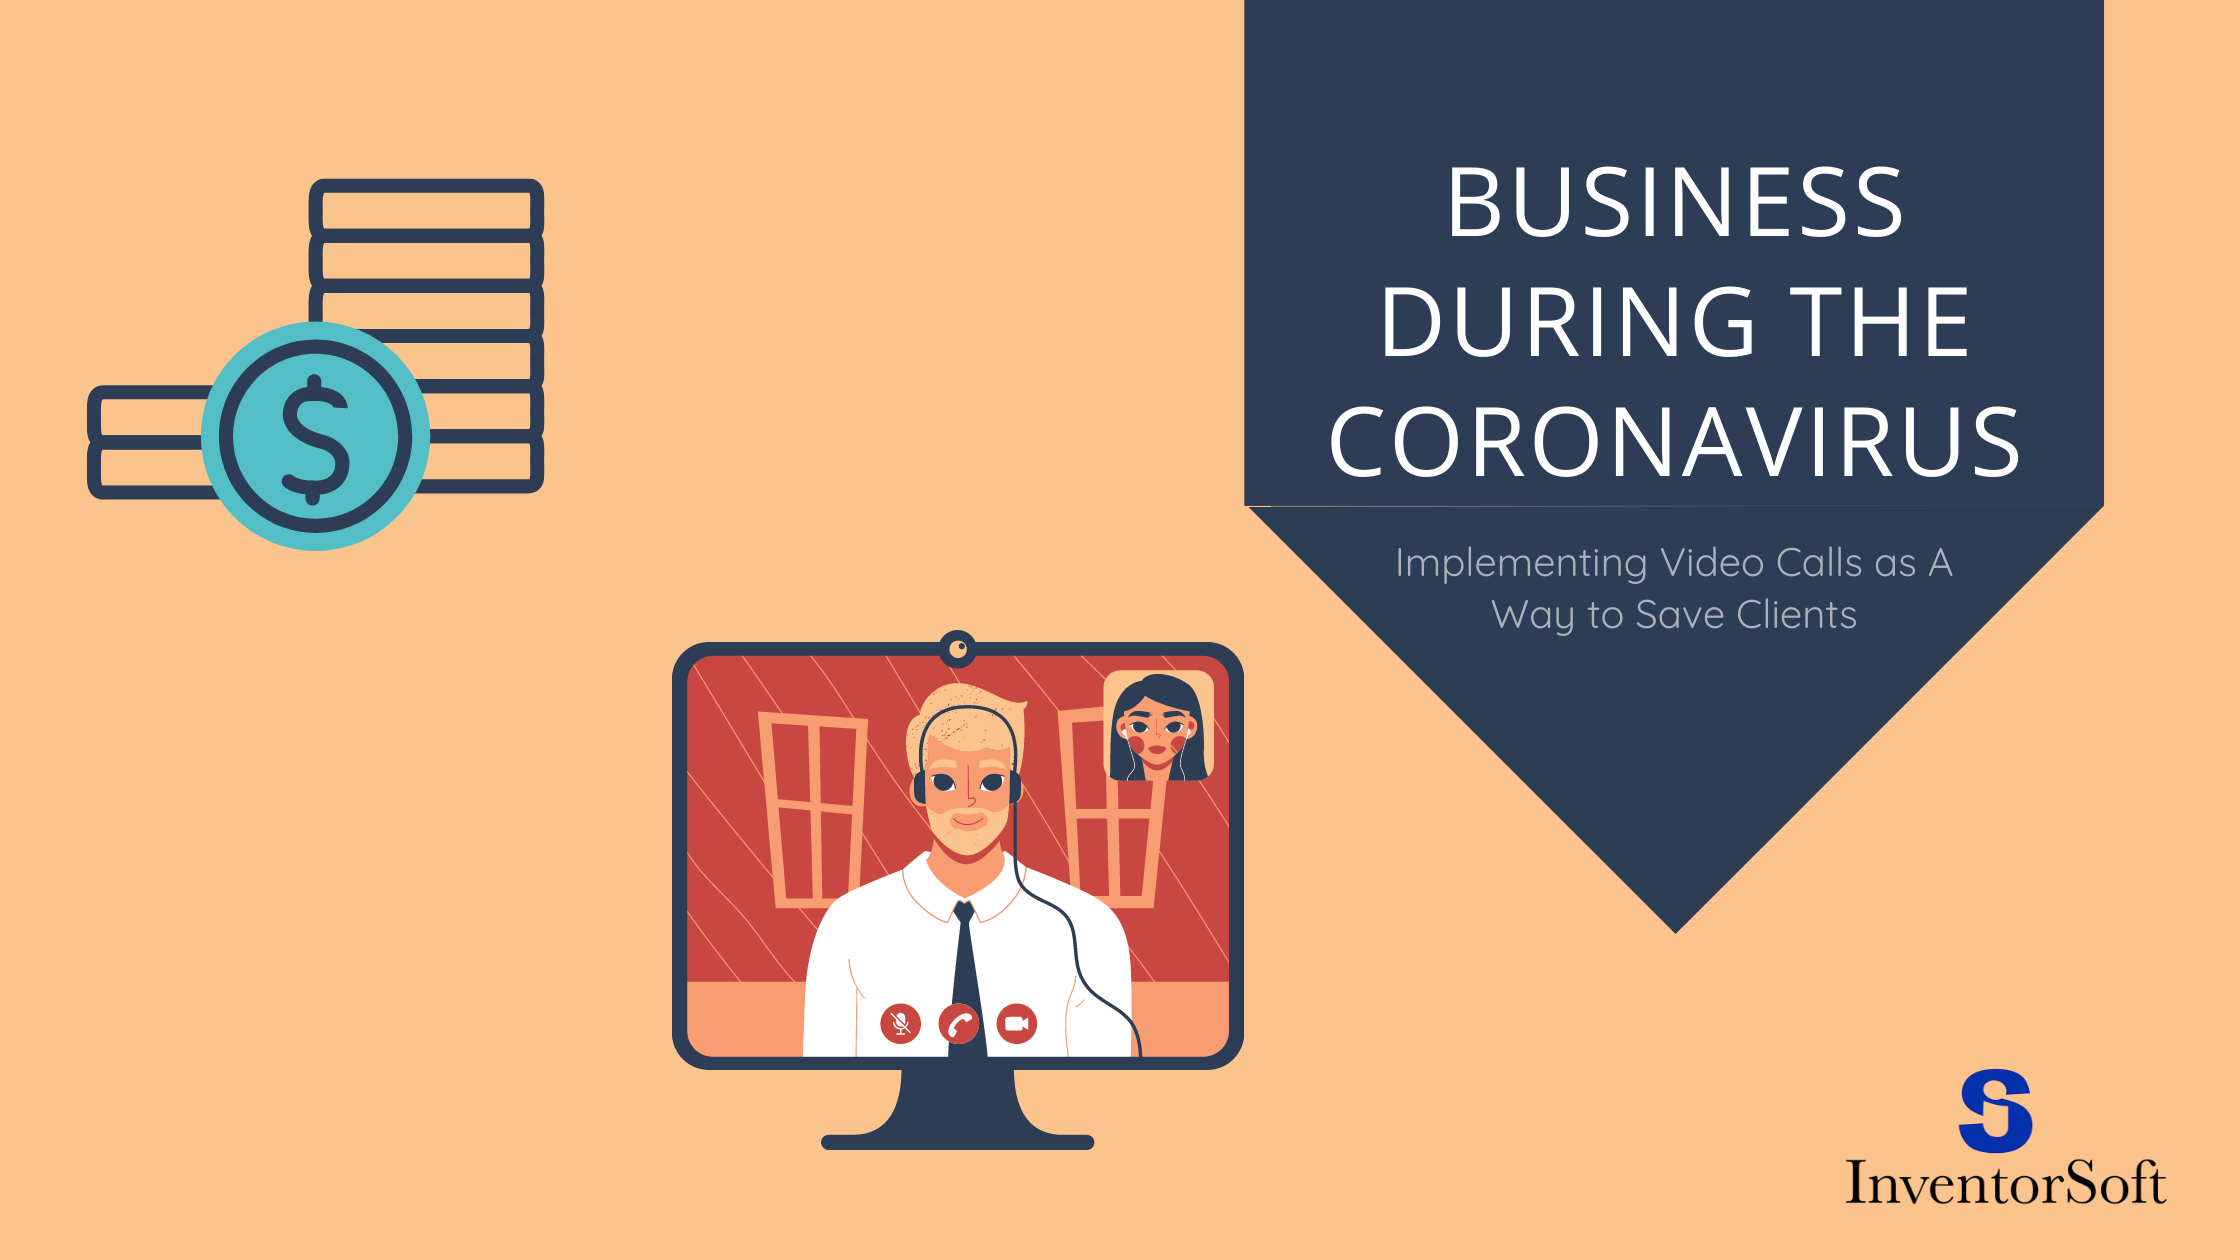 Business during the coronavirus: implementing video calls as a way to save clients